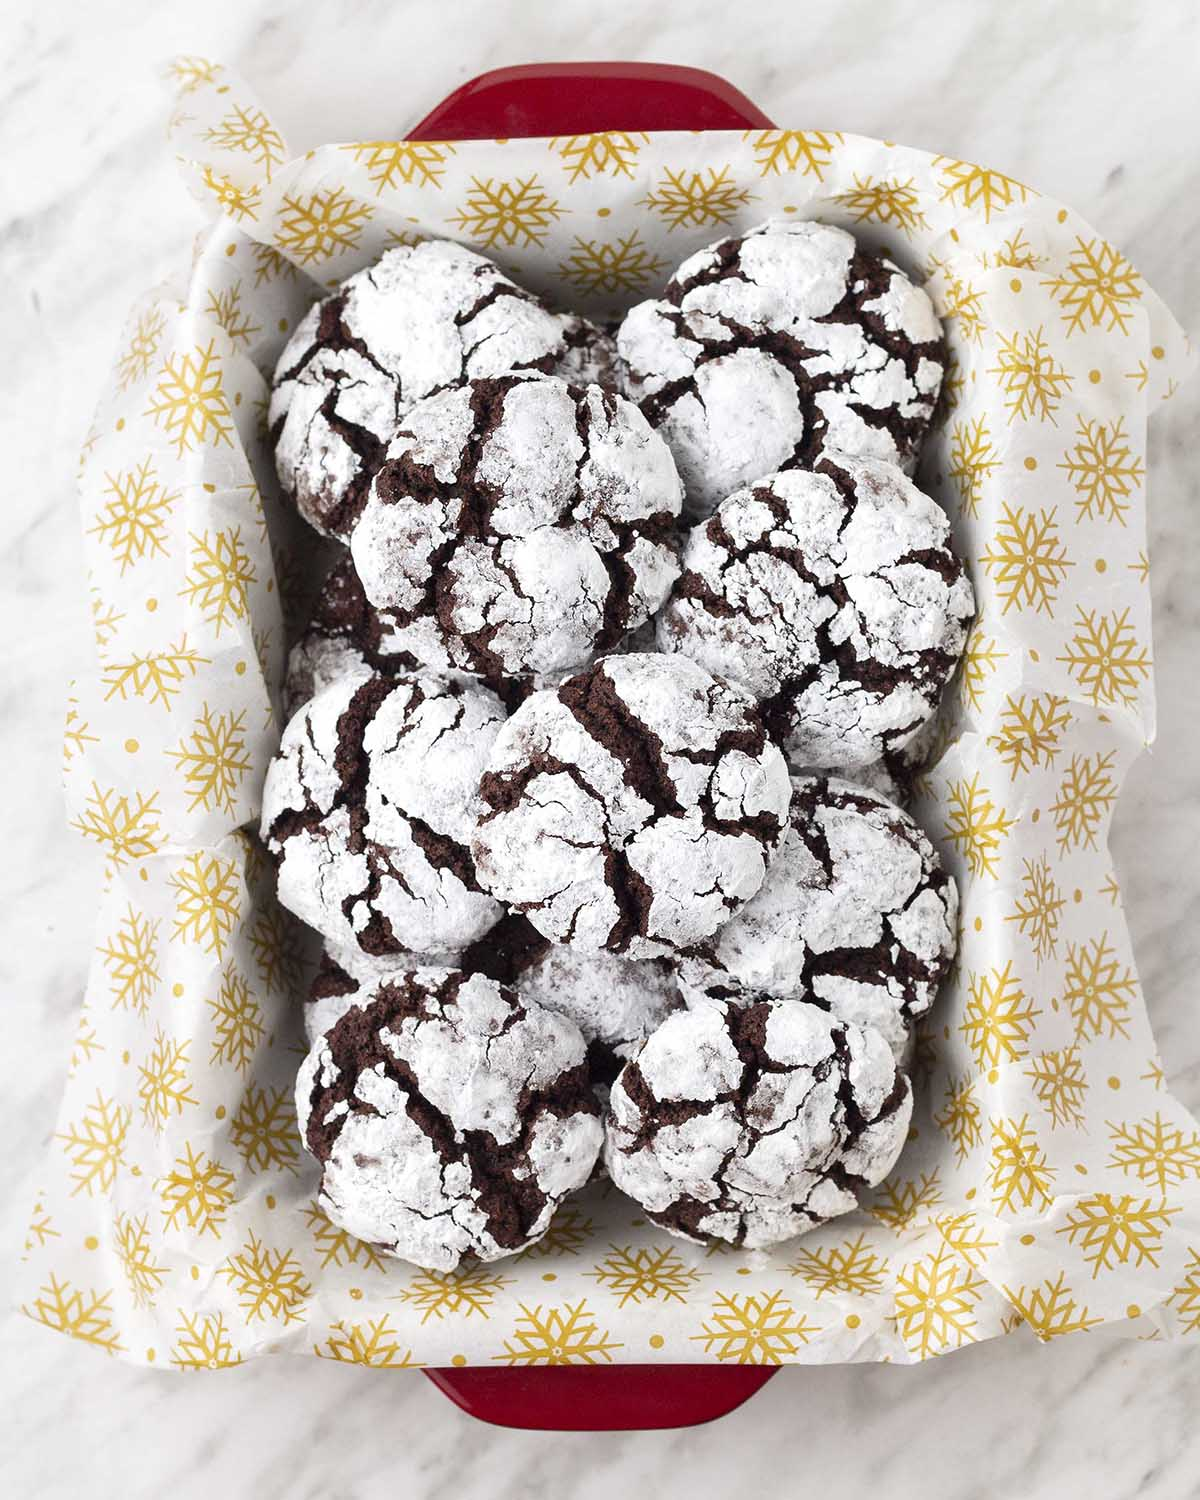 An overhead picture of a dish filled with gluten-free vegan chocolate crinkle cookies.